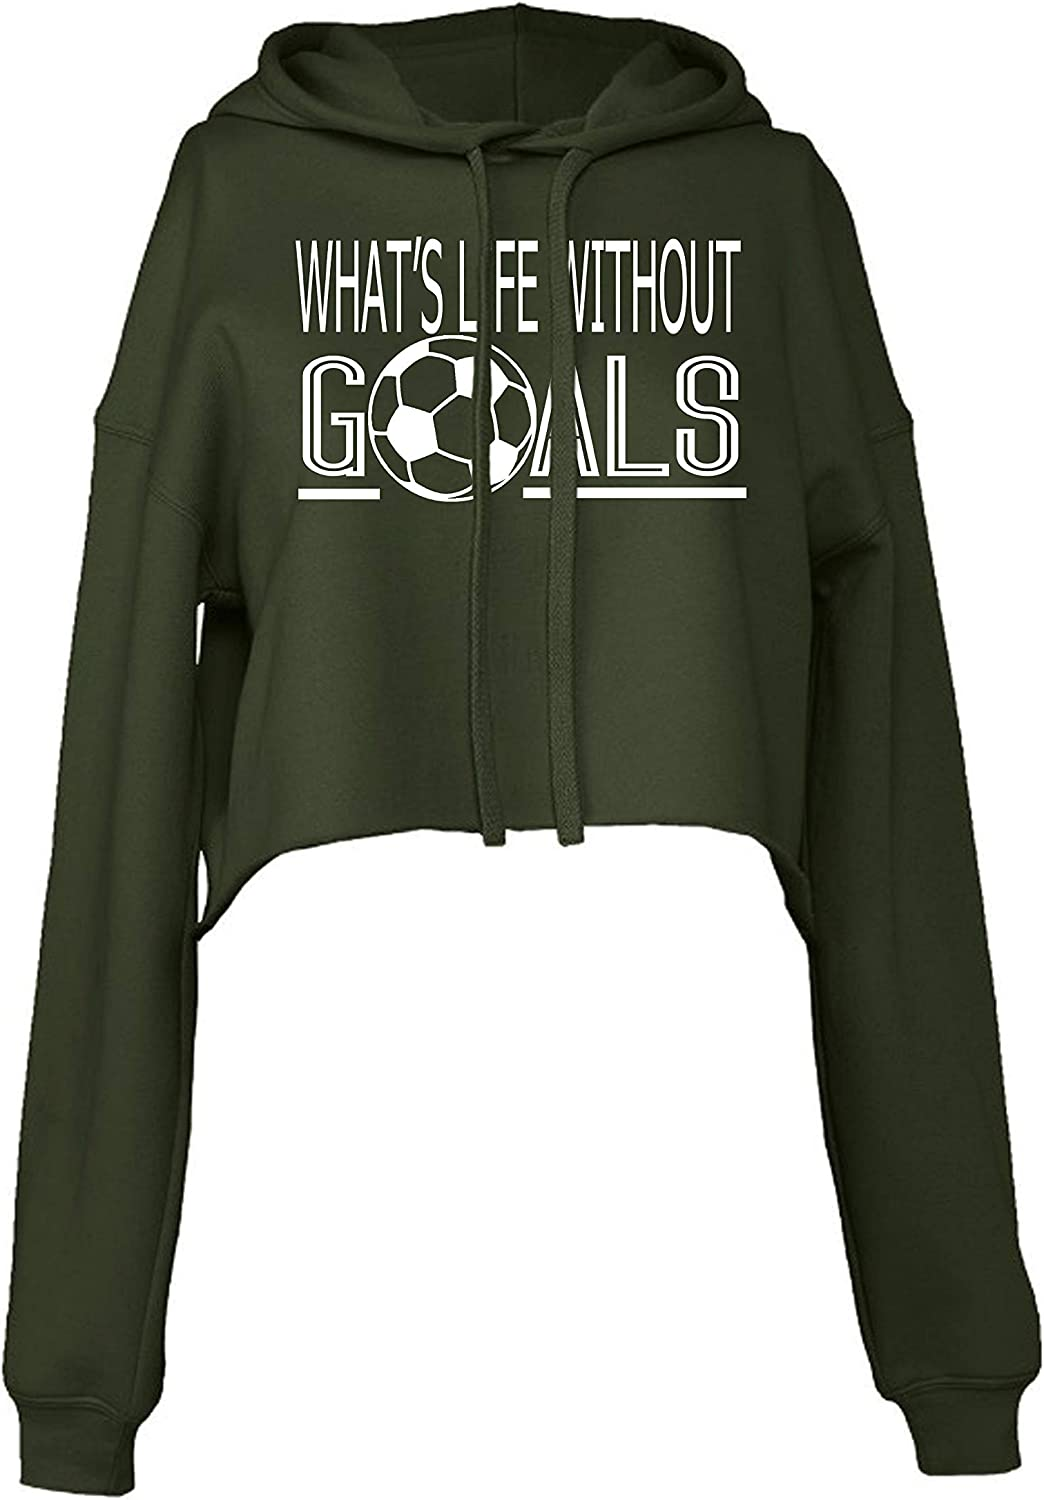 Whats Life Without Goals Cropped Hoodie for Athletic Teen Girl